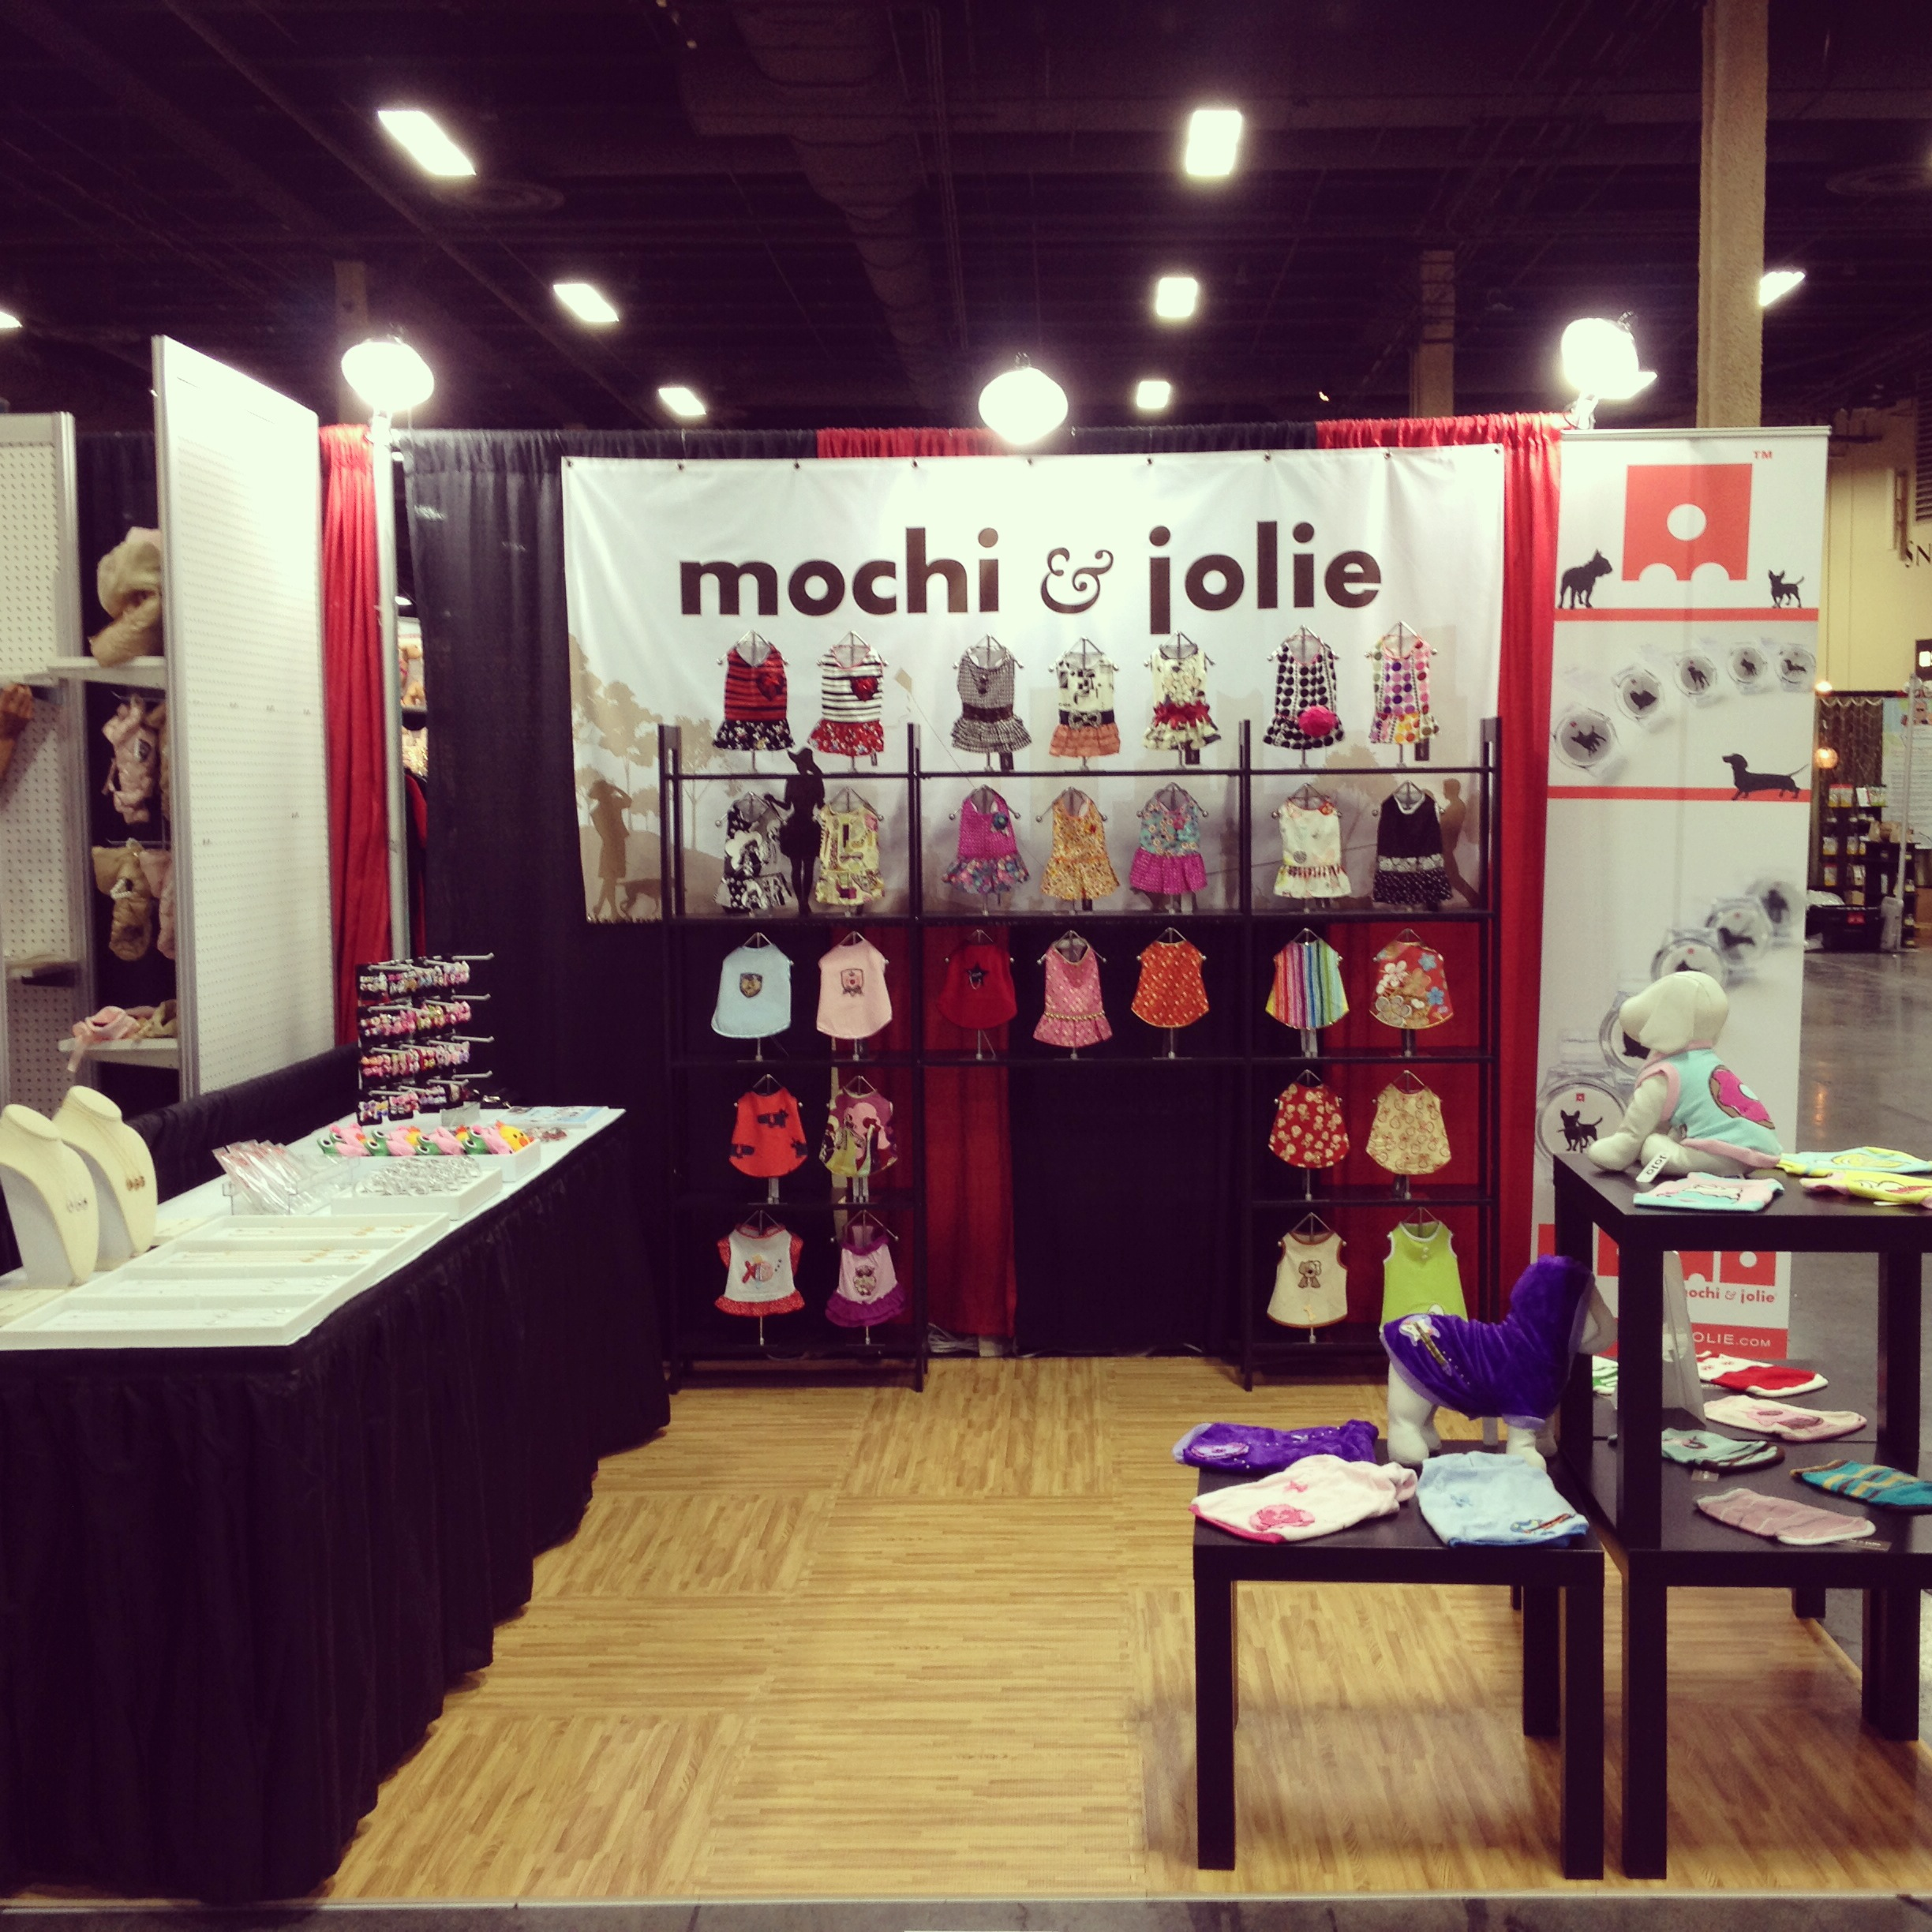 Our corner booth is ready for the visitors!